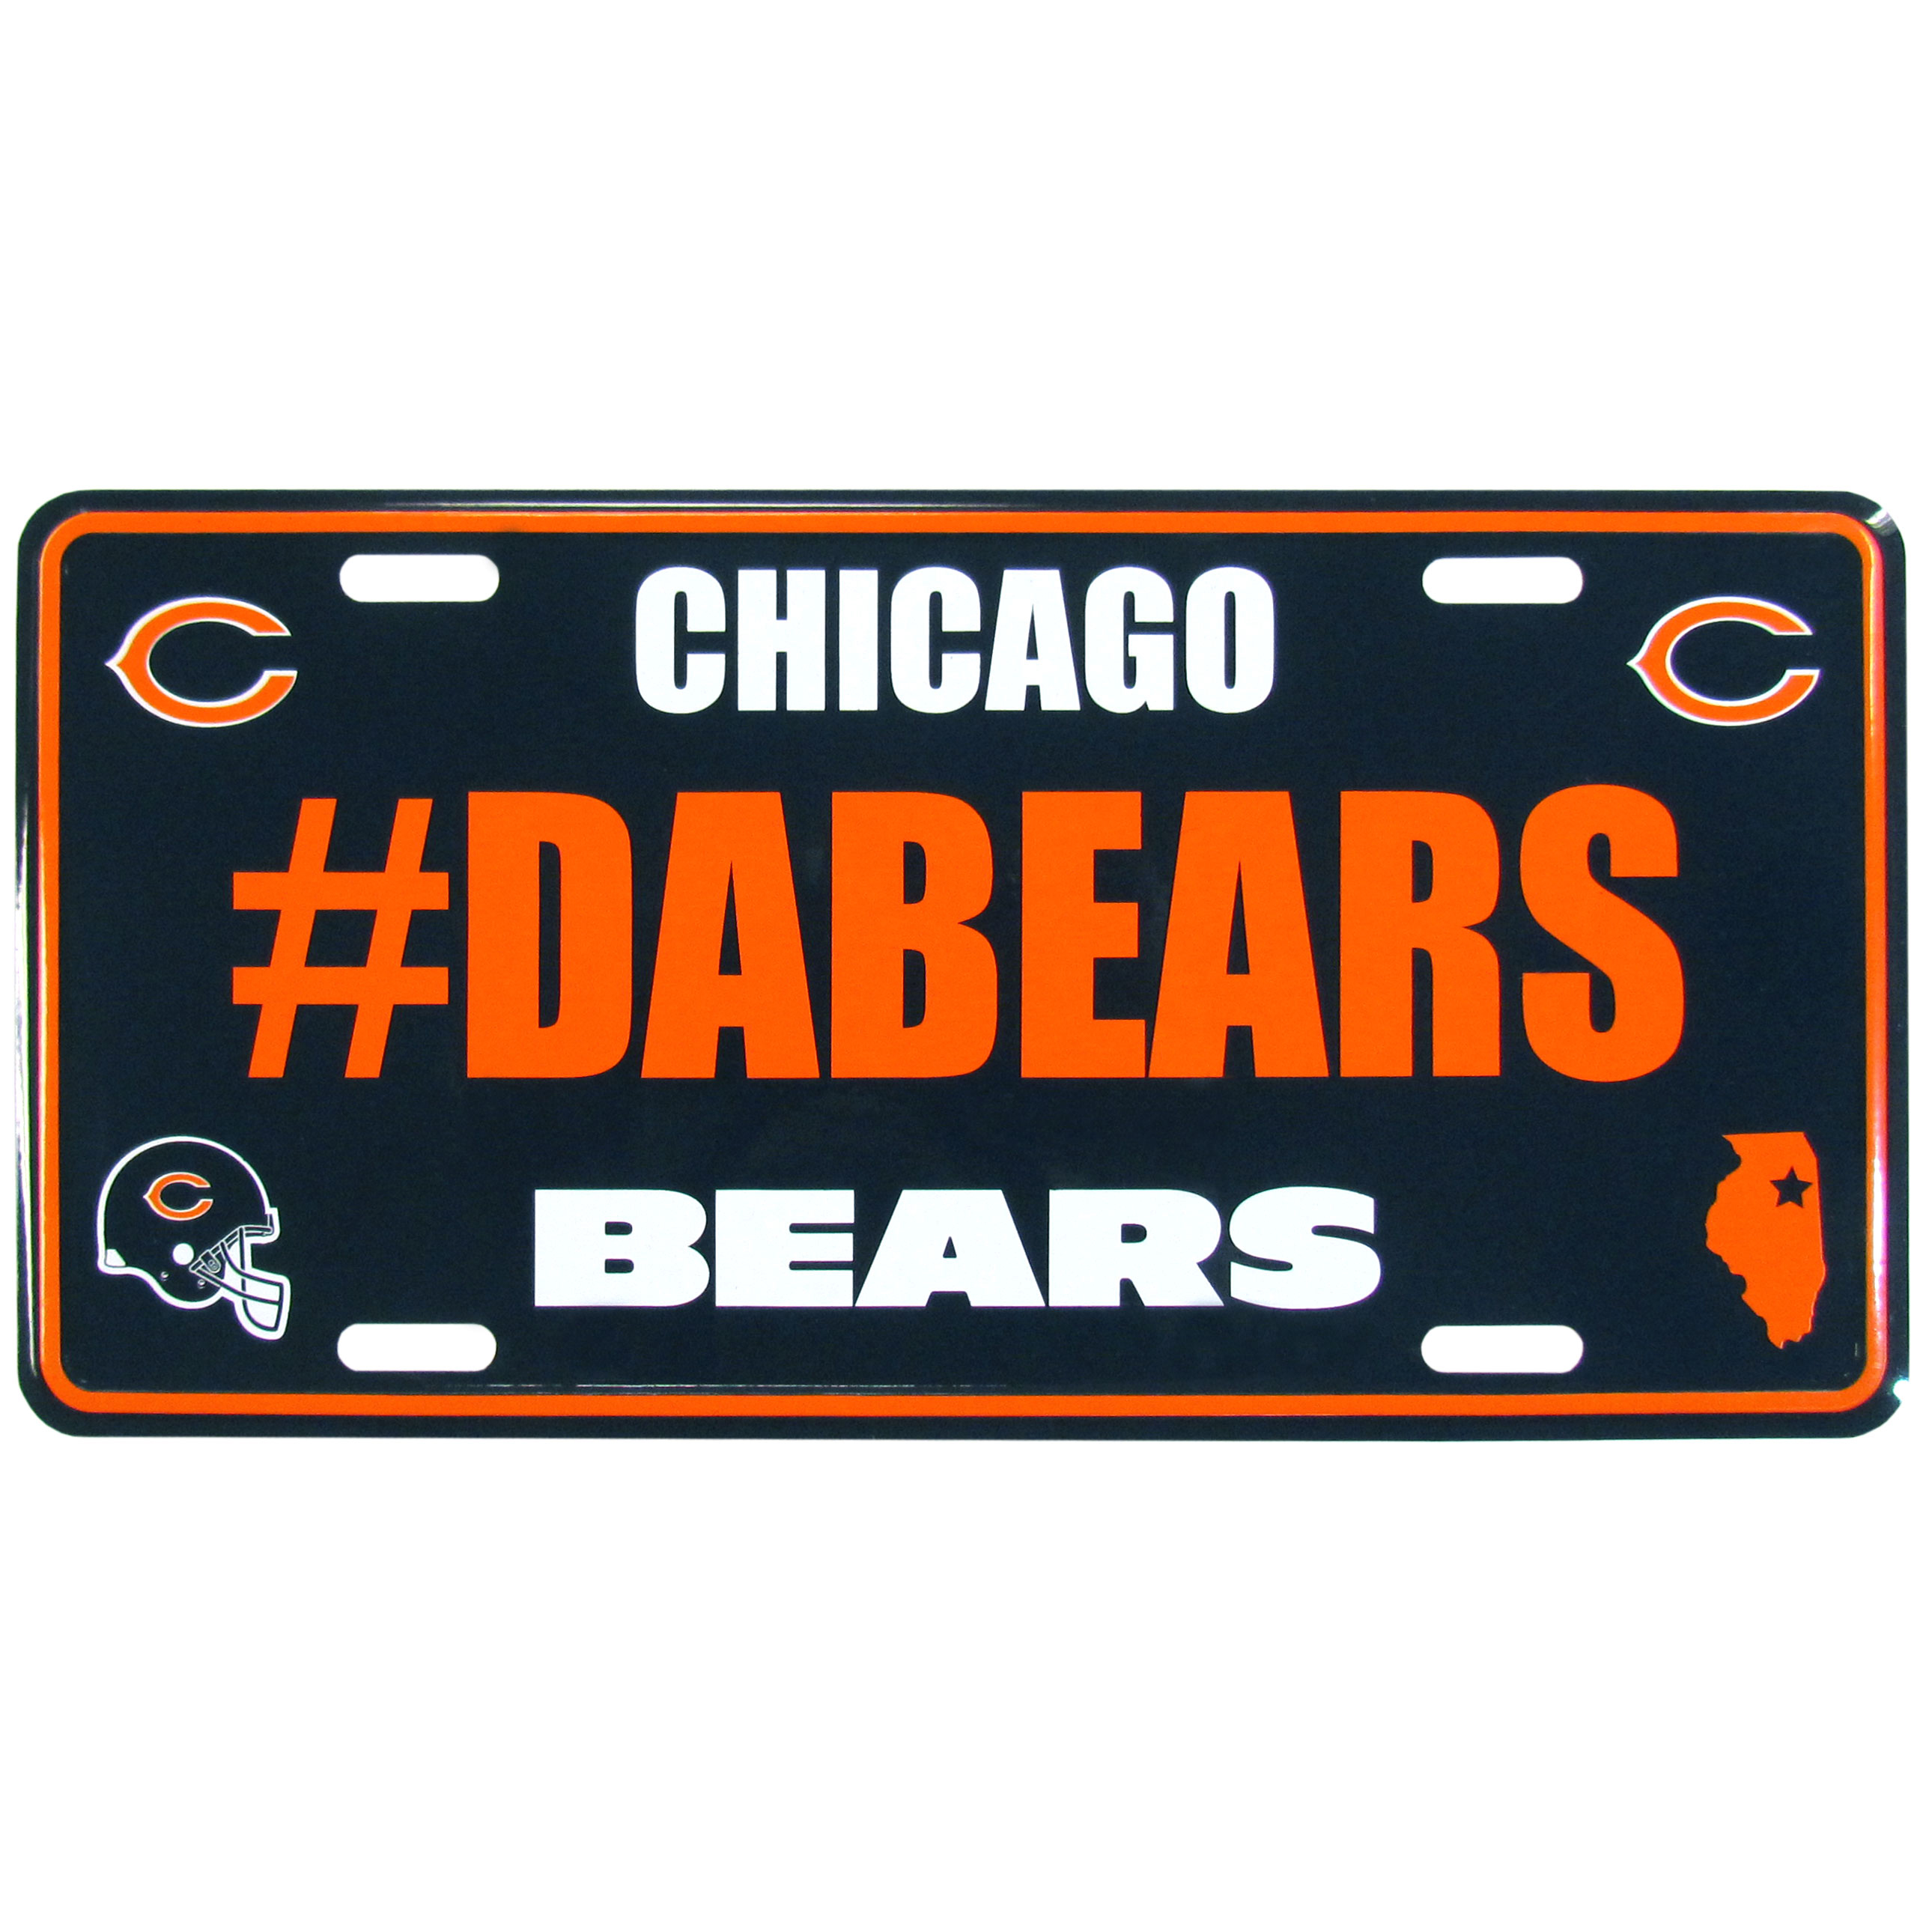 Chicago Bears Hashtag License Plate - It's a hashtag world! Celebrate the Chicago Bears with this stamped aluminum license plate with the most popular team hashtag! This bright license plate will look great on your vehicle or mounted in your fan cave.